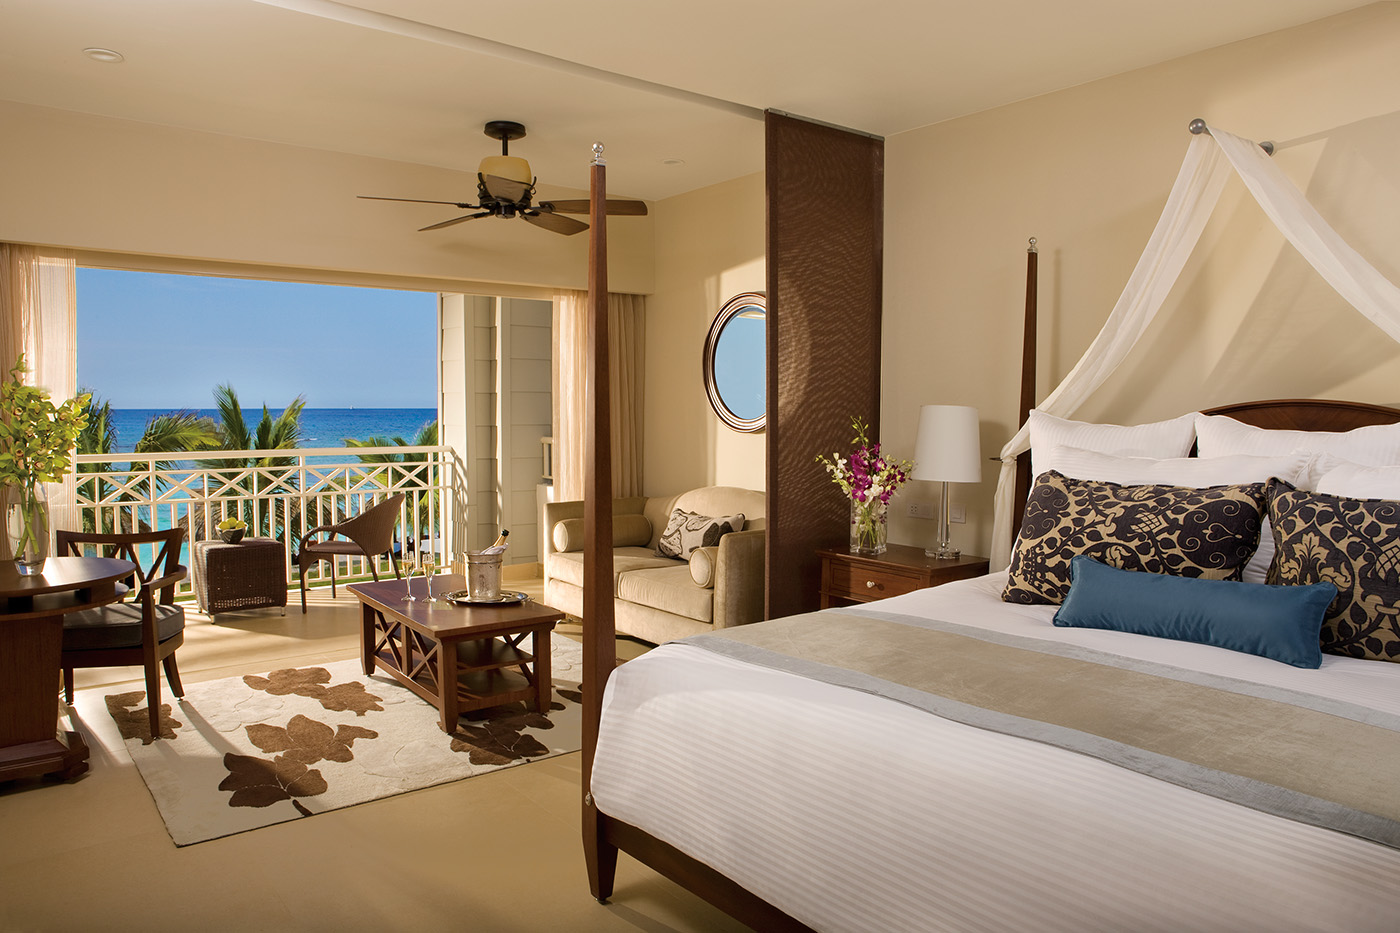 King Room at Secrets in Montego Bay